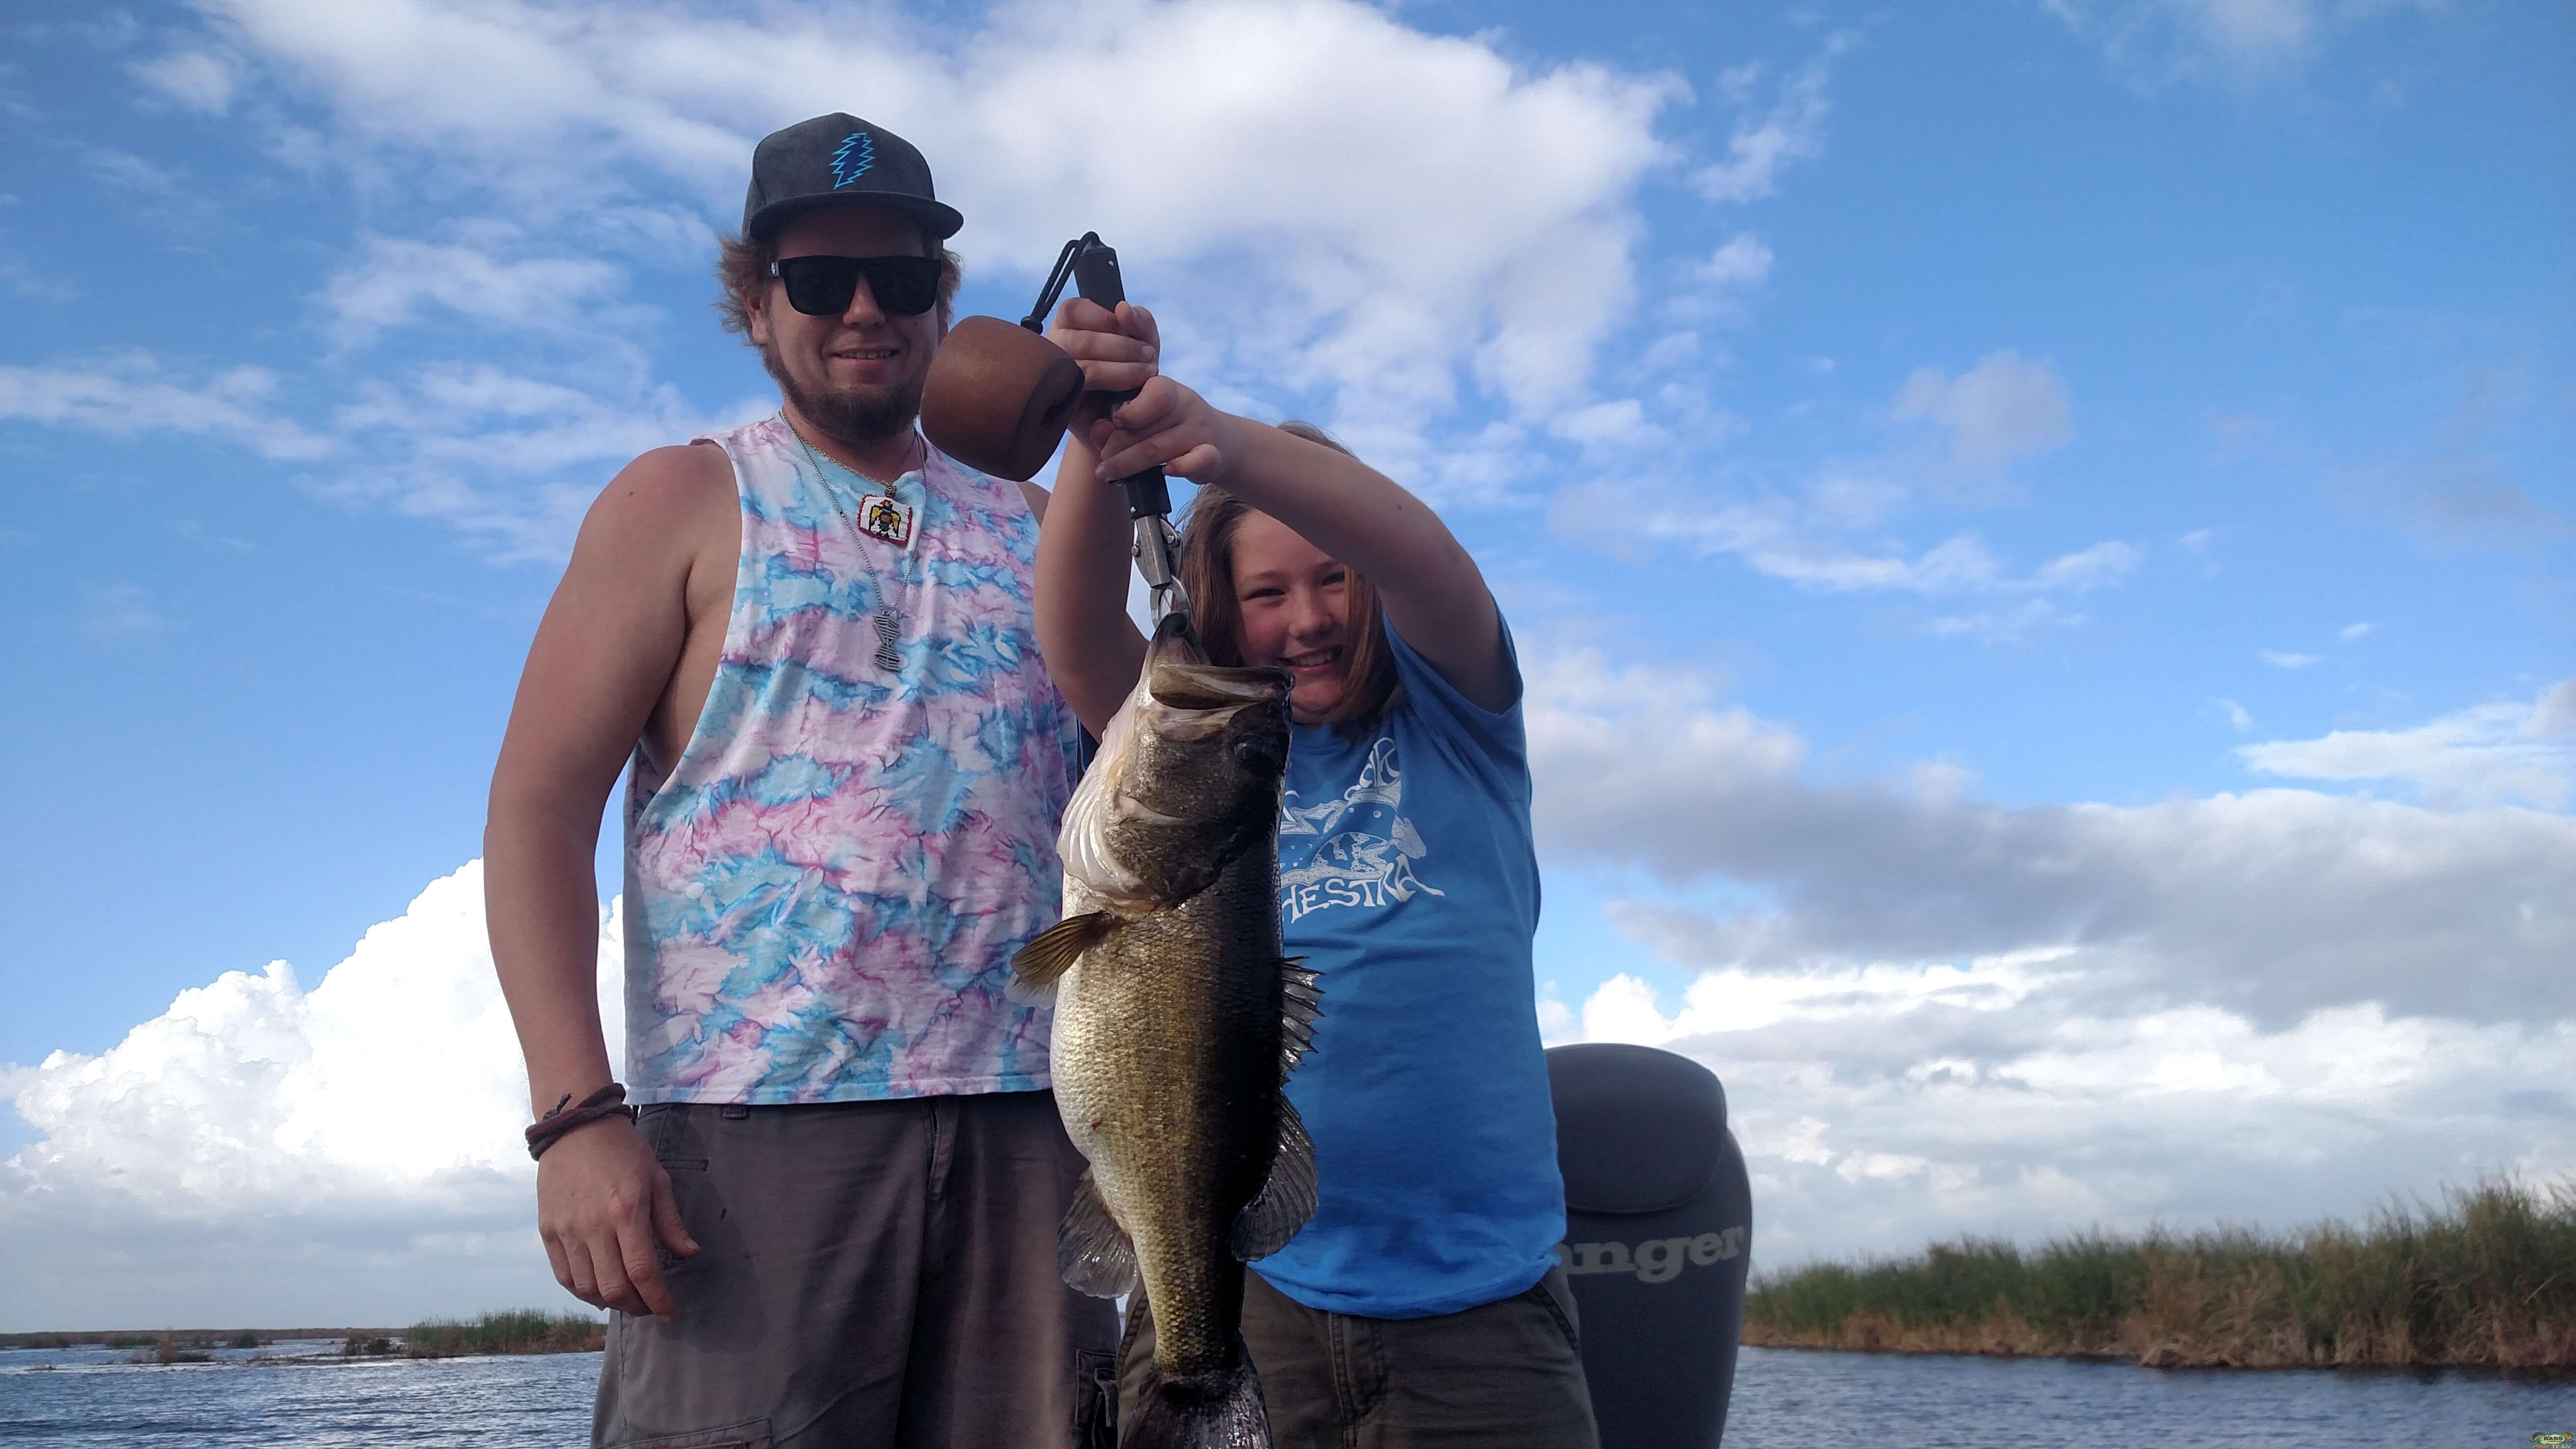 Calvin laid into a beautiful personal best 7 pound trophy bass